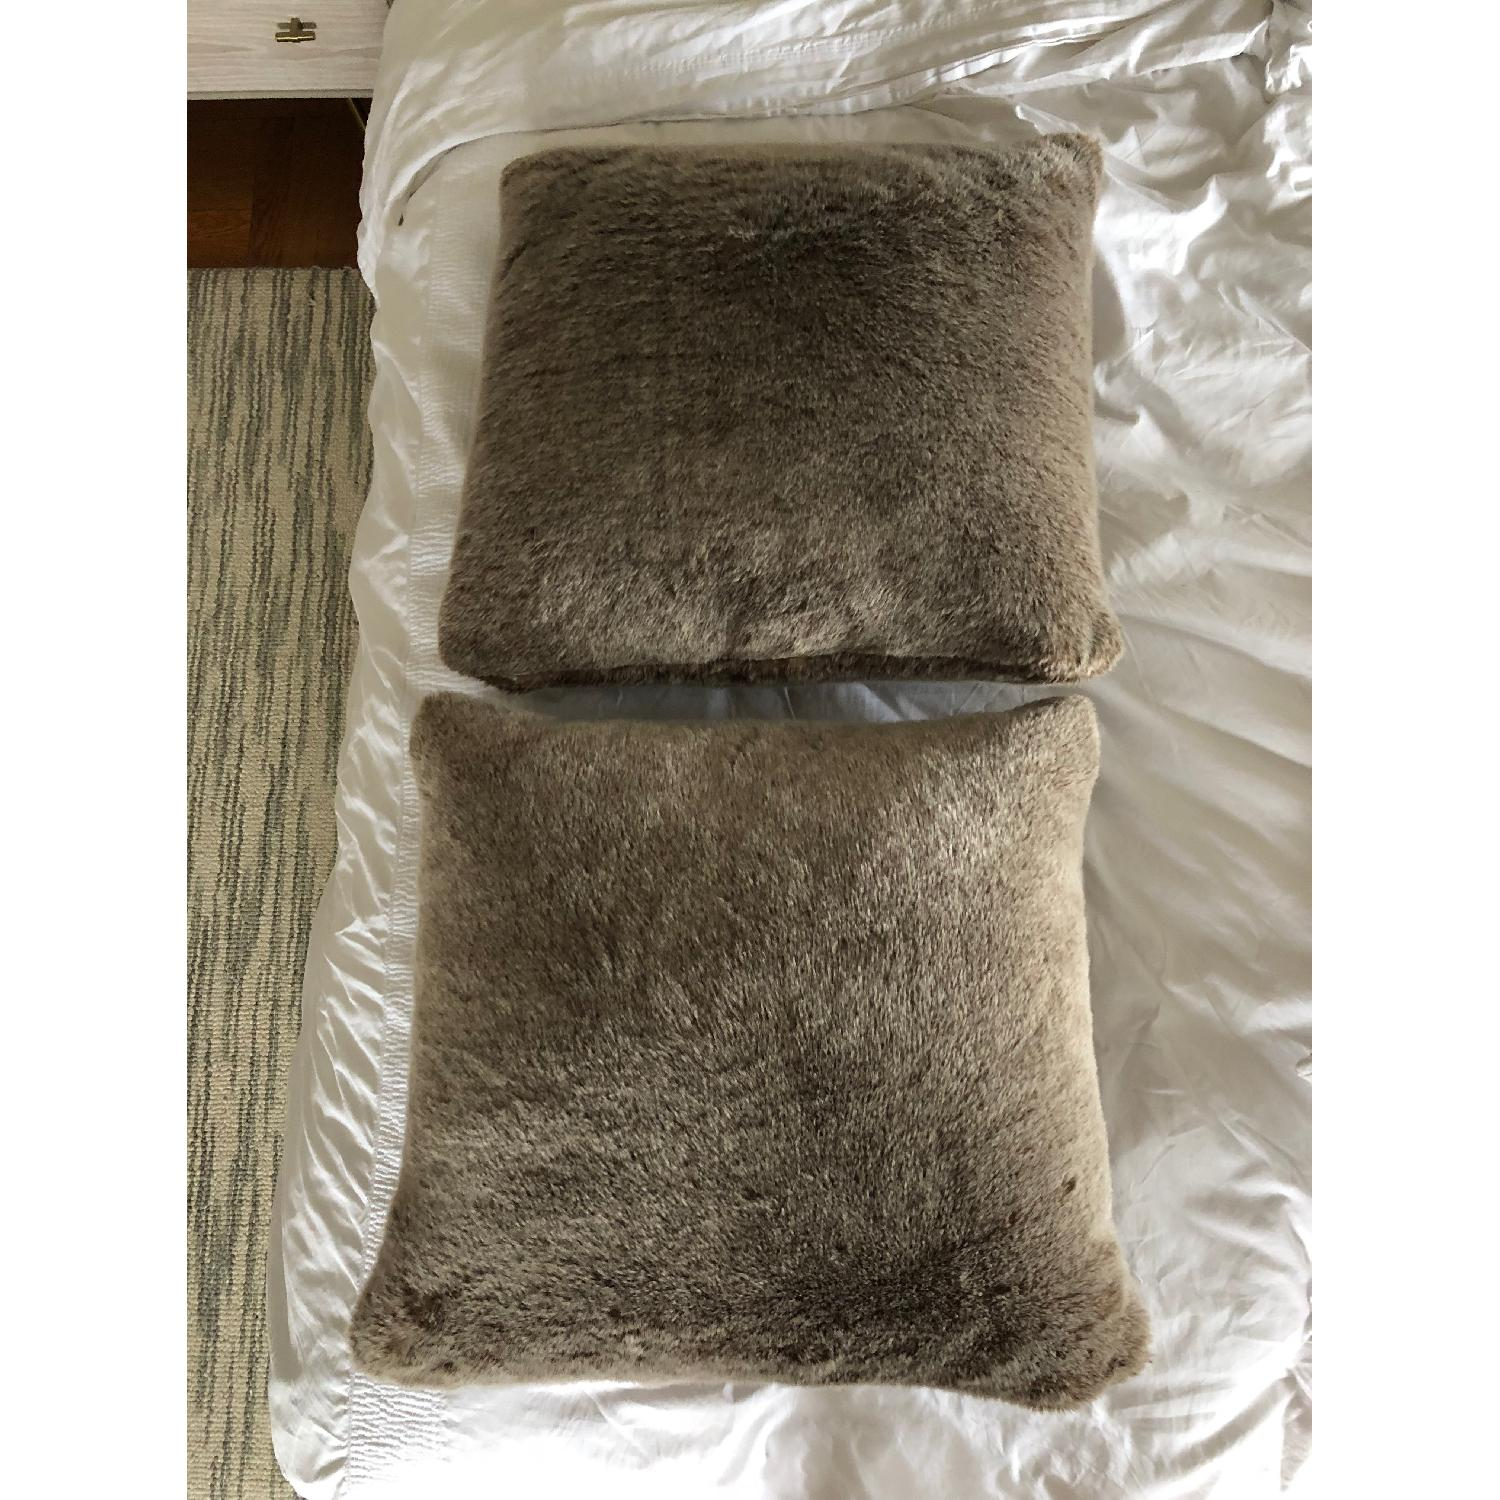 Restoration Hardware Faux Fur Throw Pillows